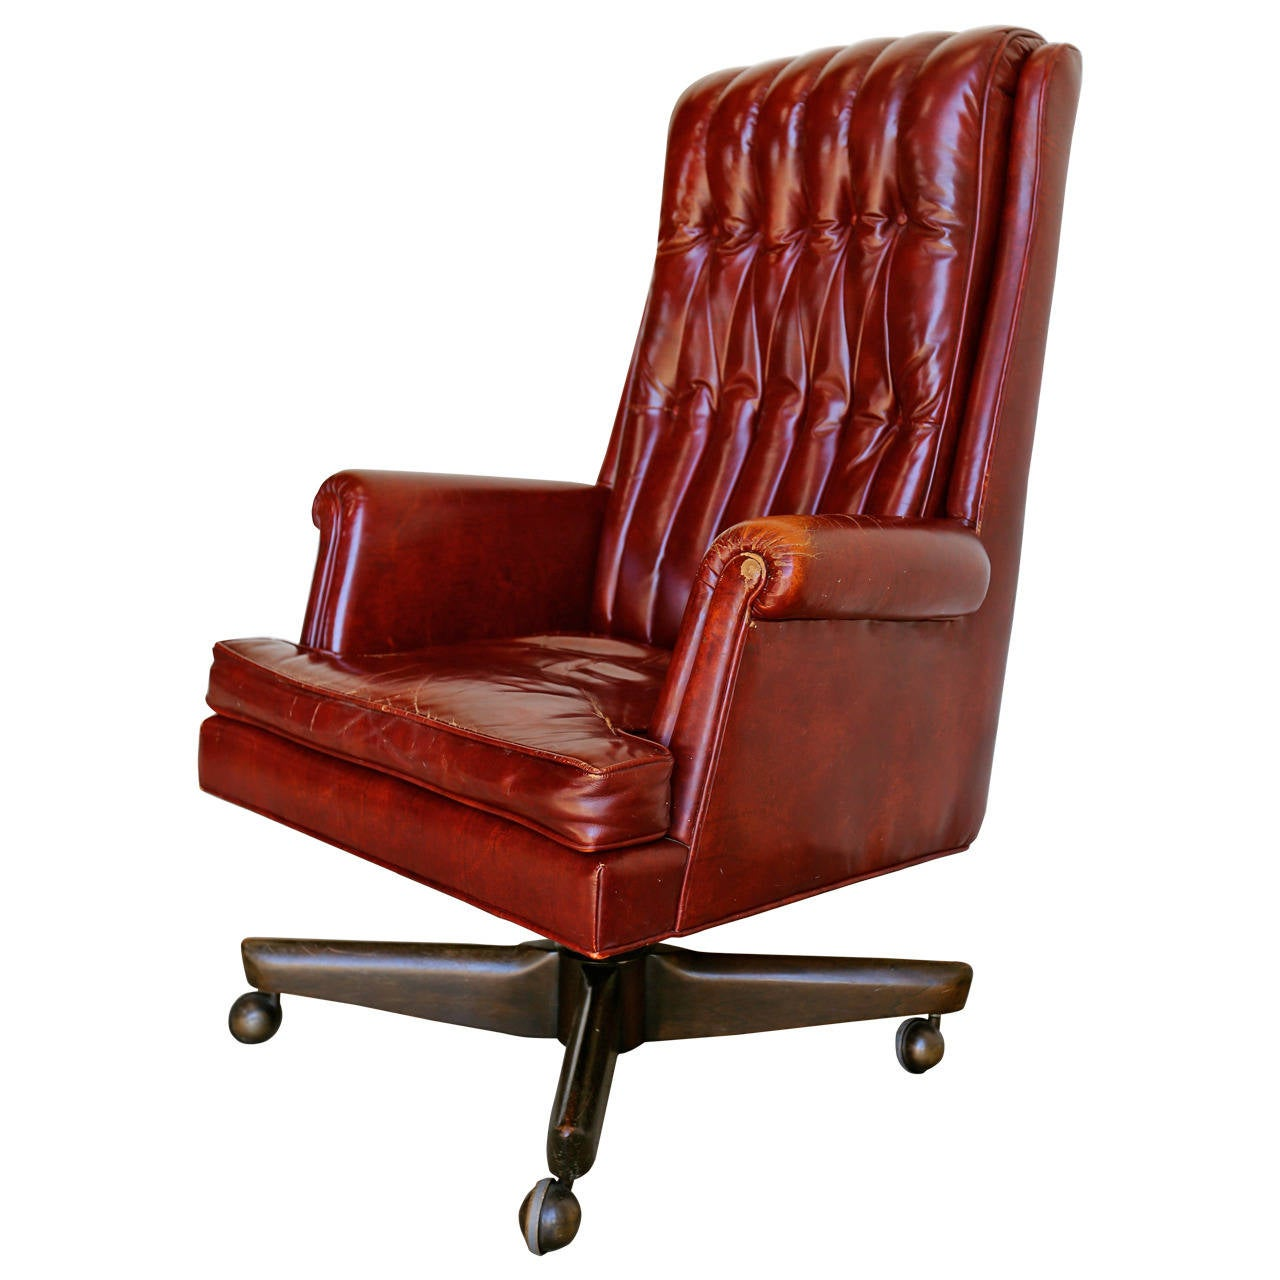 distressed leather desk chair steel in nagpur executive by monteverdi young at 1stdibs for sale